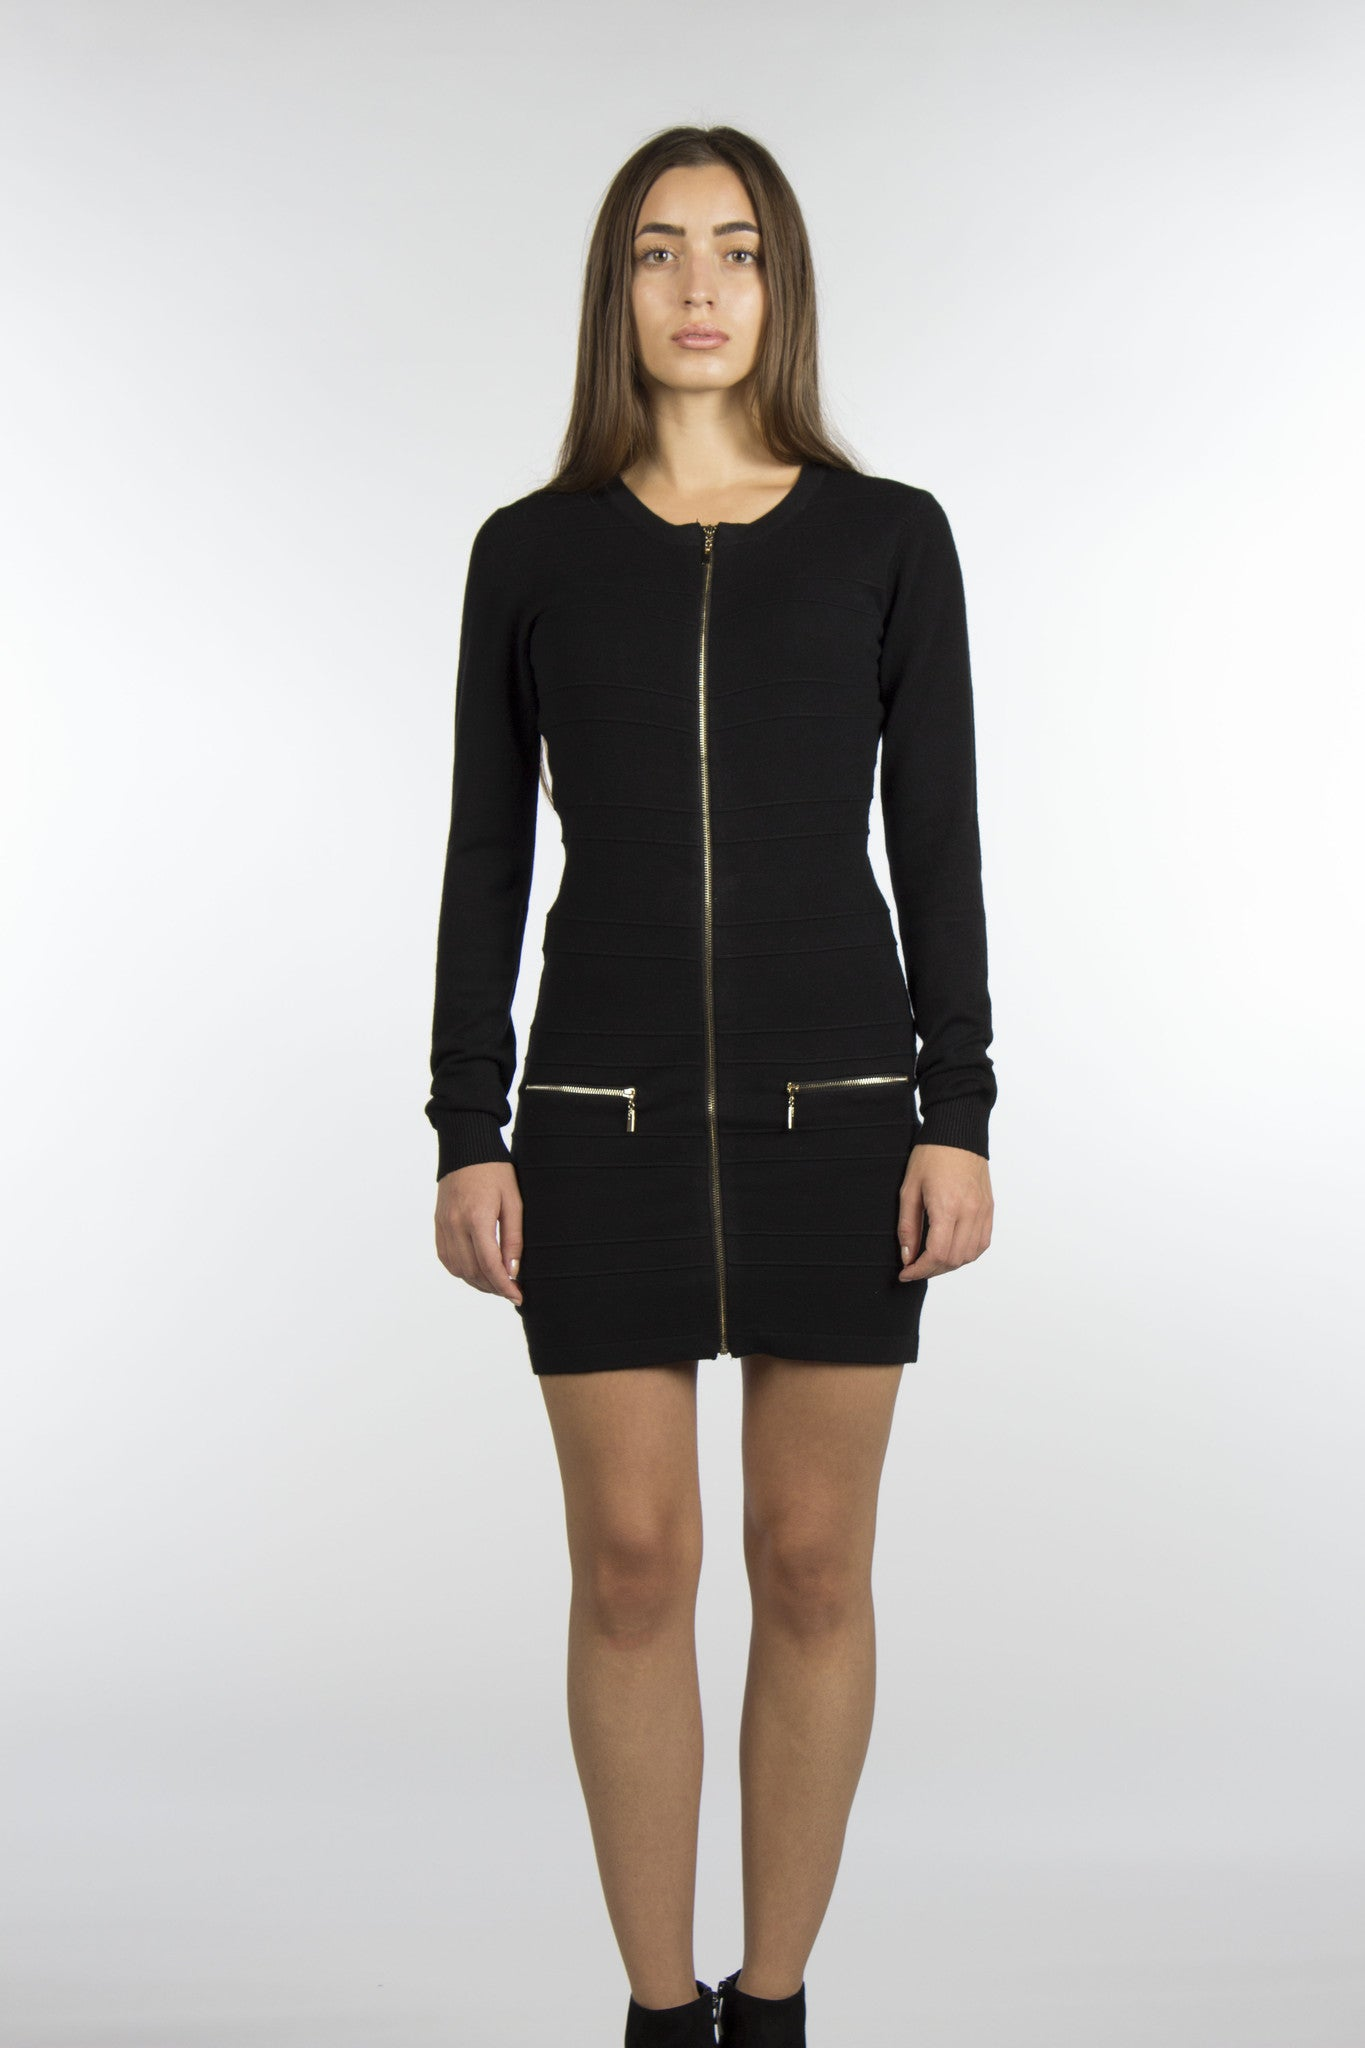 zipper black dress